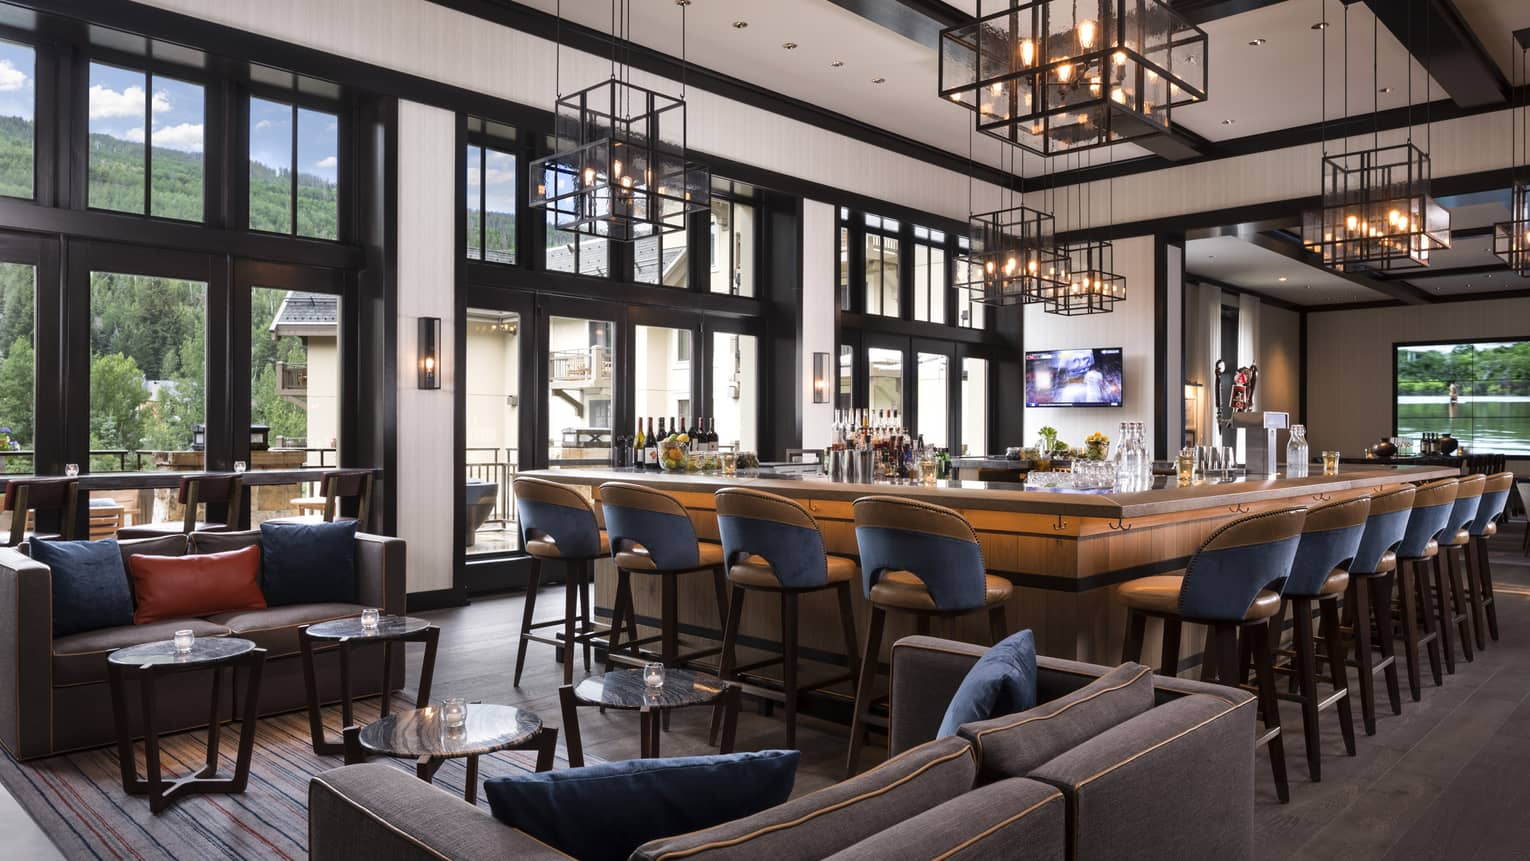 Open Year Round The Remedy Bar Is Ideal Destination In Vail To Unwind Socialize And Imbibe